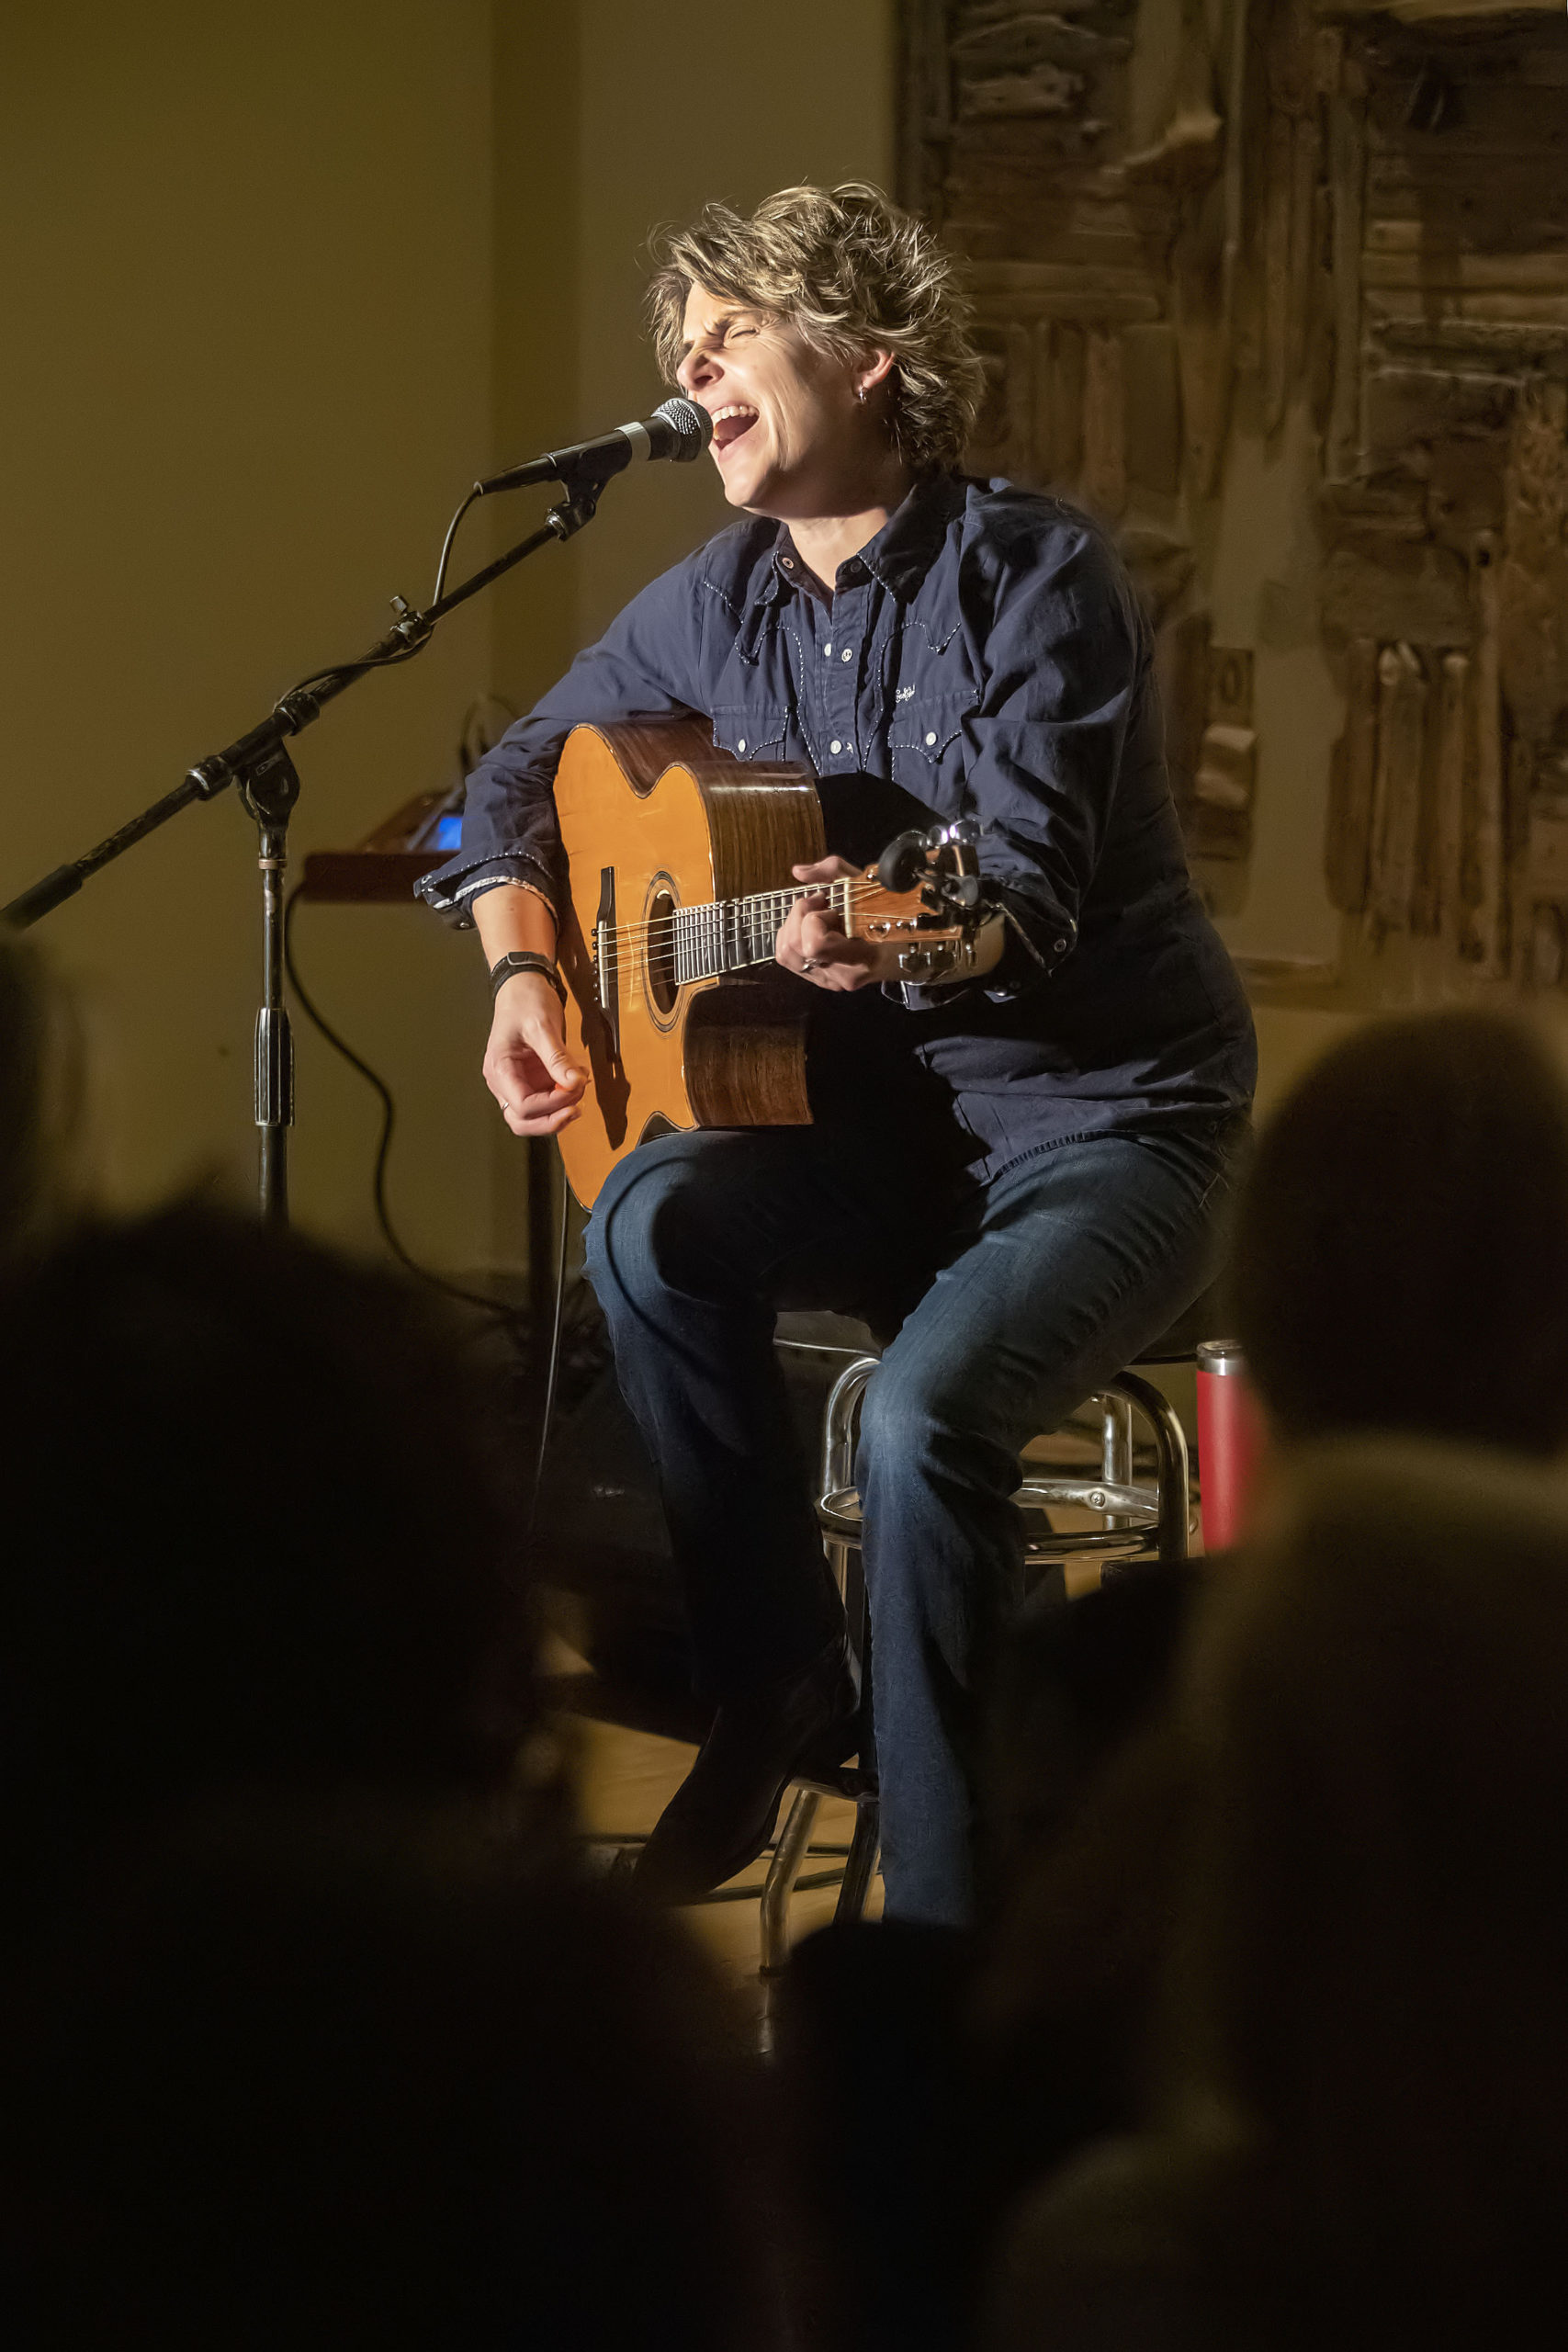 Inda Eaton performing during Songwriters Share at the Unitarian Universalist Meeting House in Bridgehampton in February, 2019.